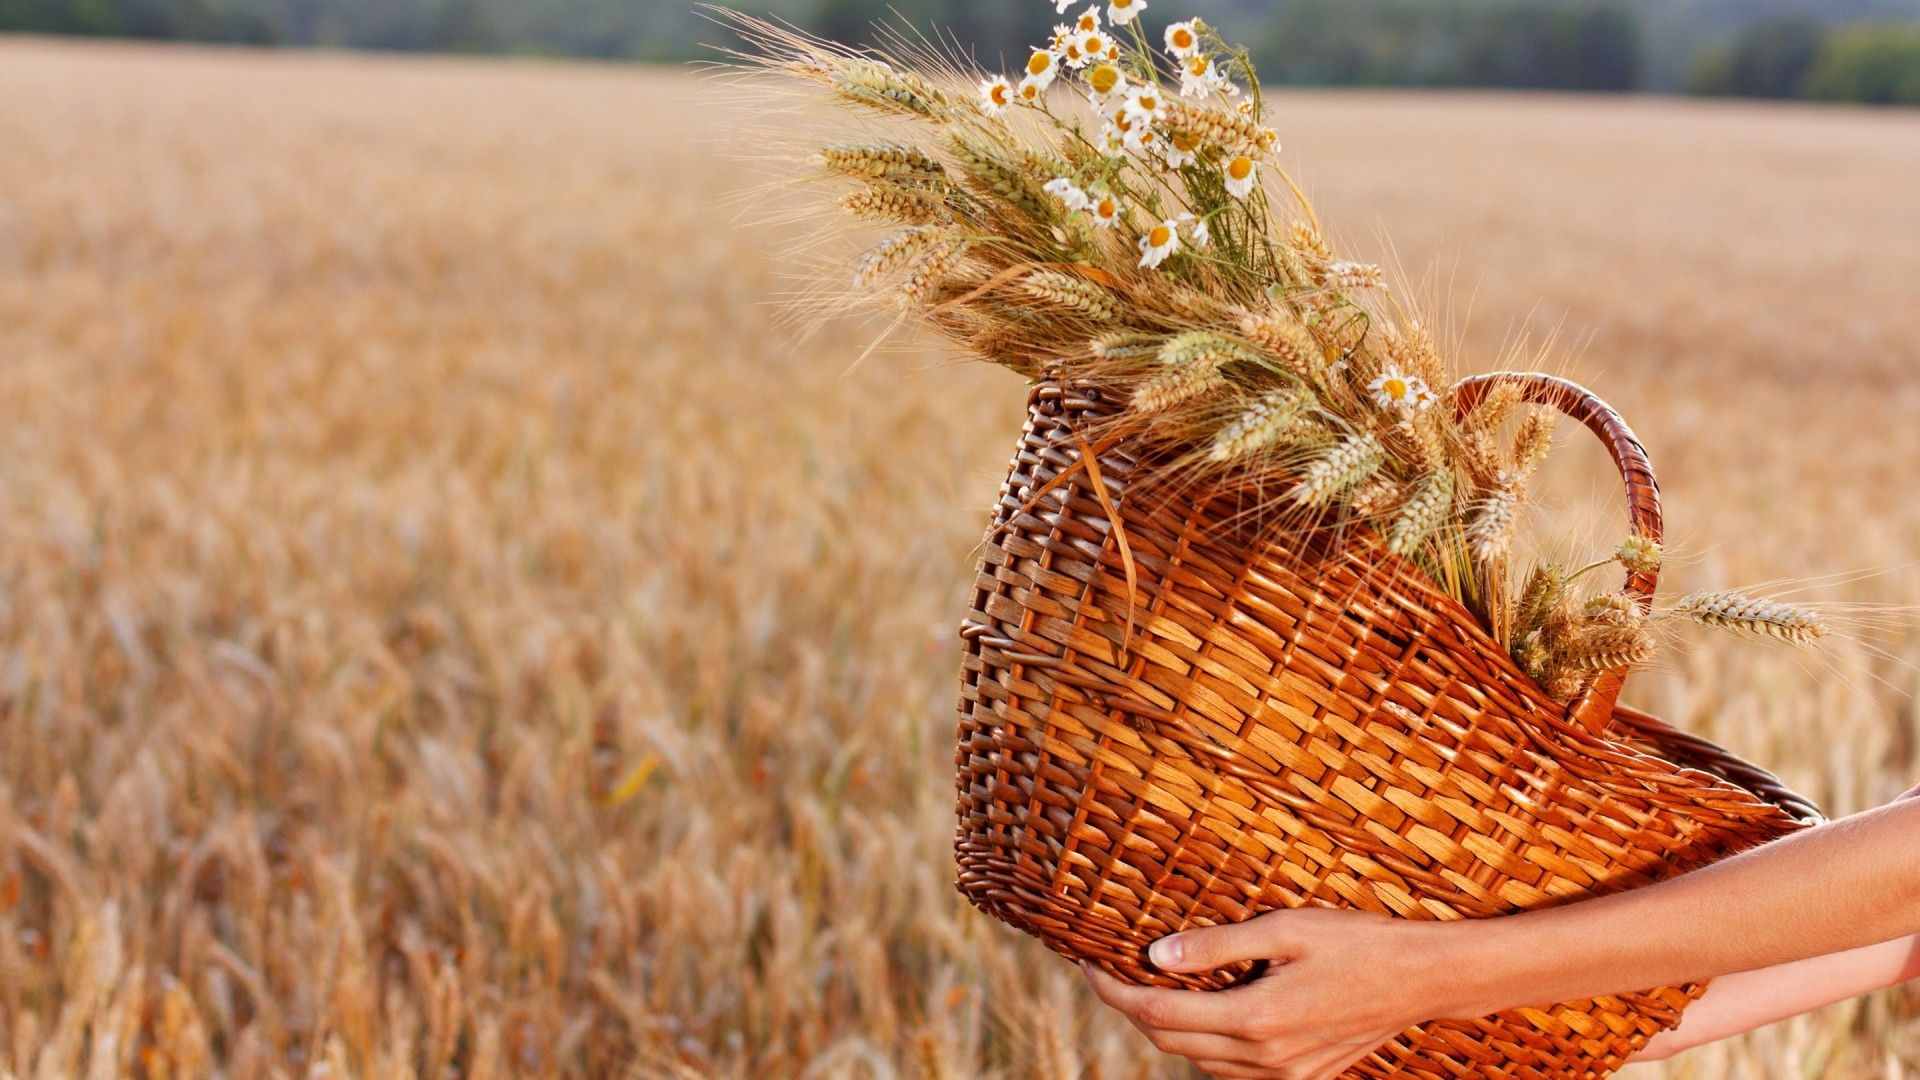 food-hands-flowers-field-baskets-straw-wheat-rye-cereal-barley-autumn-harvest-plant-agriculture-prairie-crop-produce-land-plant-flowering-plant-grass-family-food-grain-commodity-maize-177123.jpg